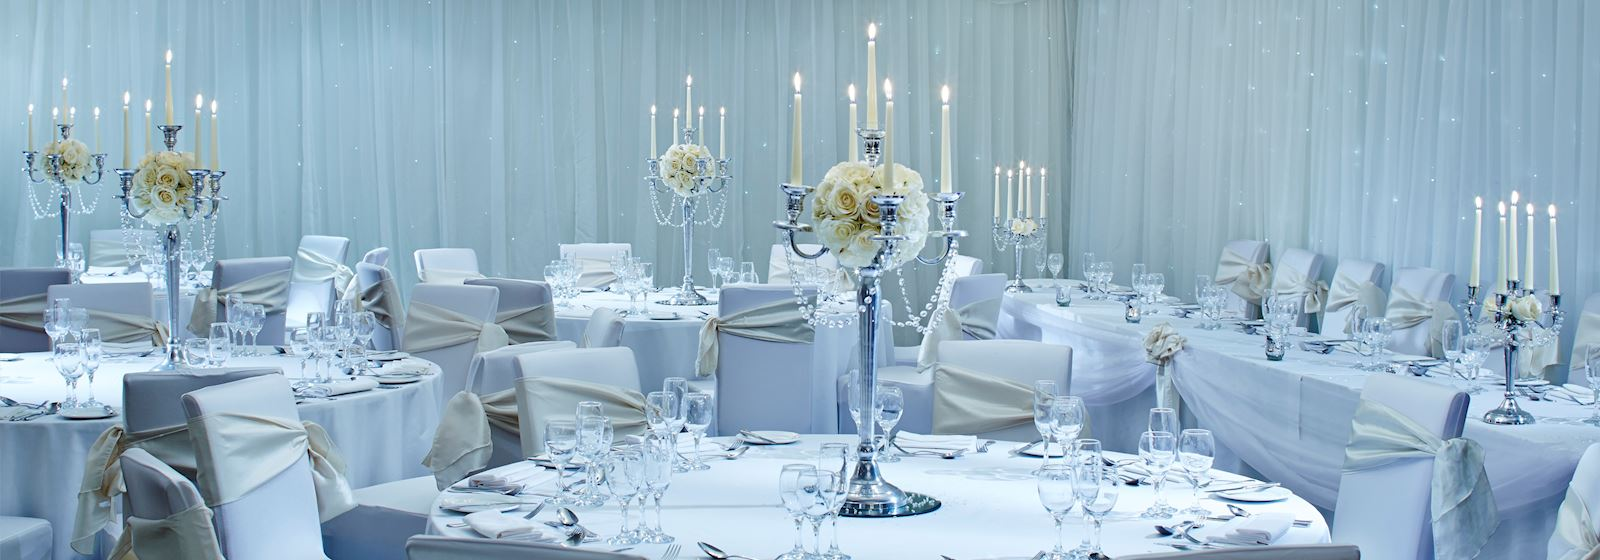 Liverpool Marriott Hotel Weddings